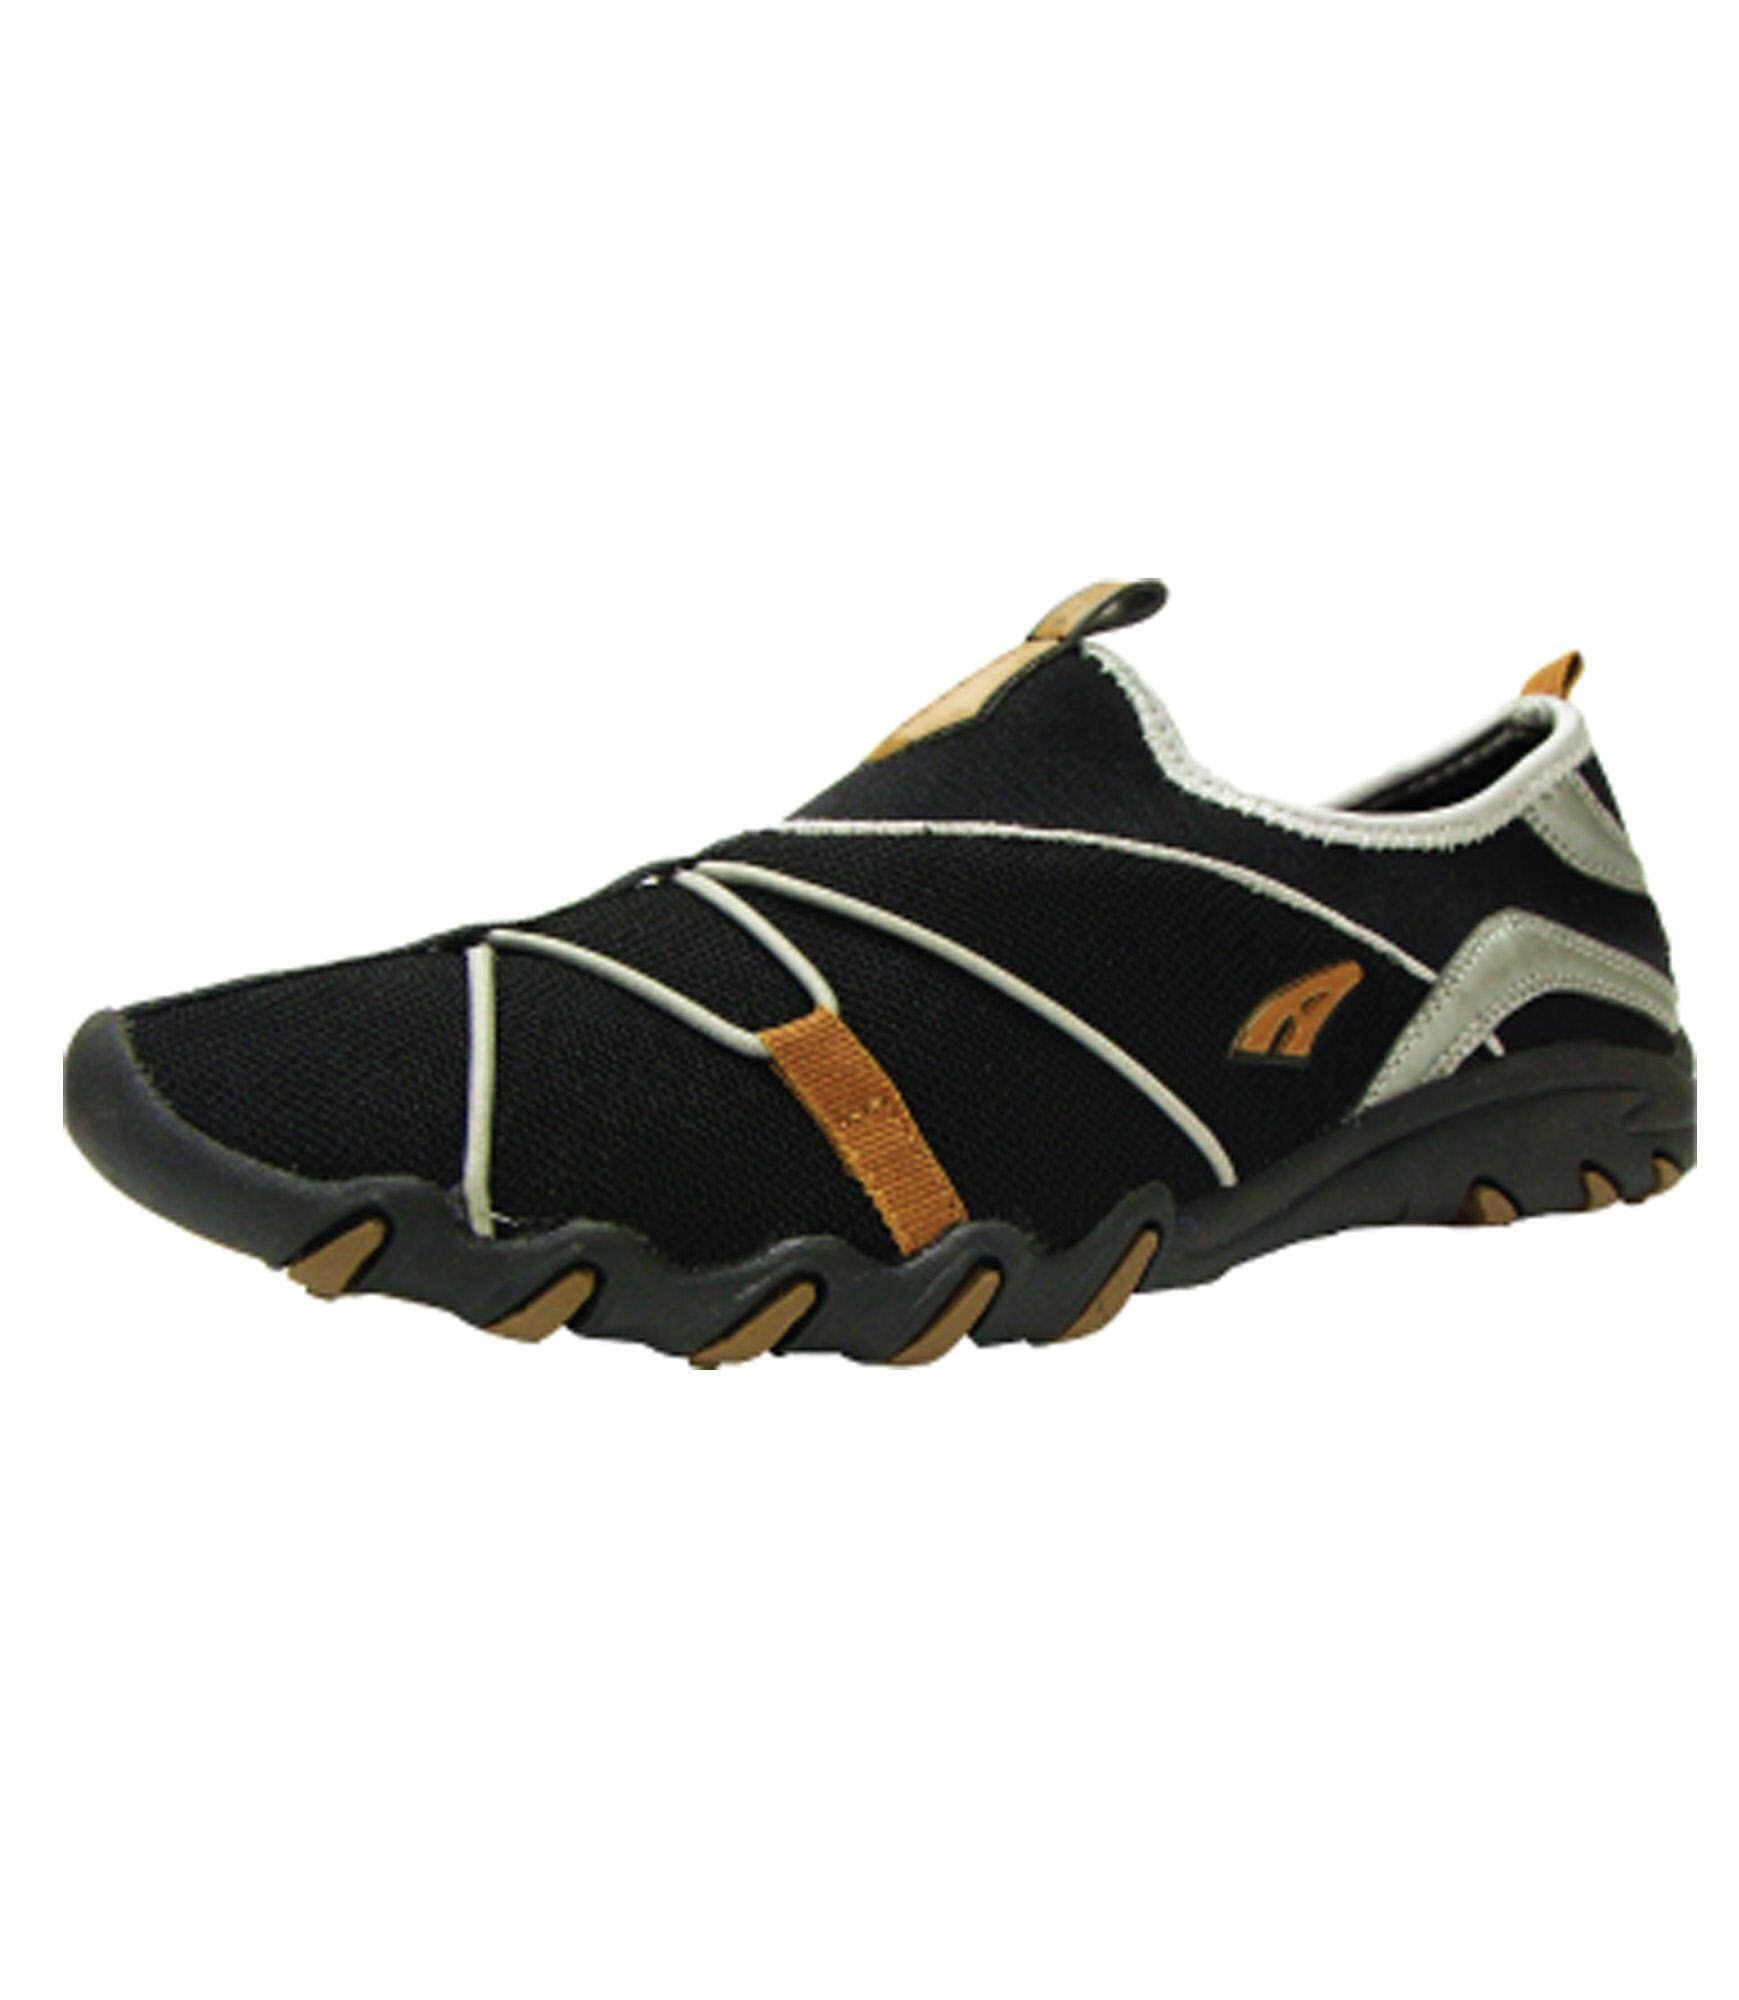 Ambros Expose Men's Walking Casual Adventure Shoes